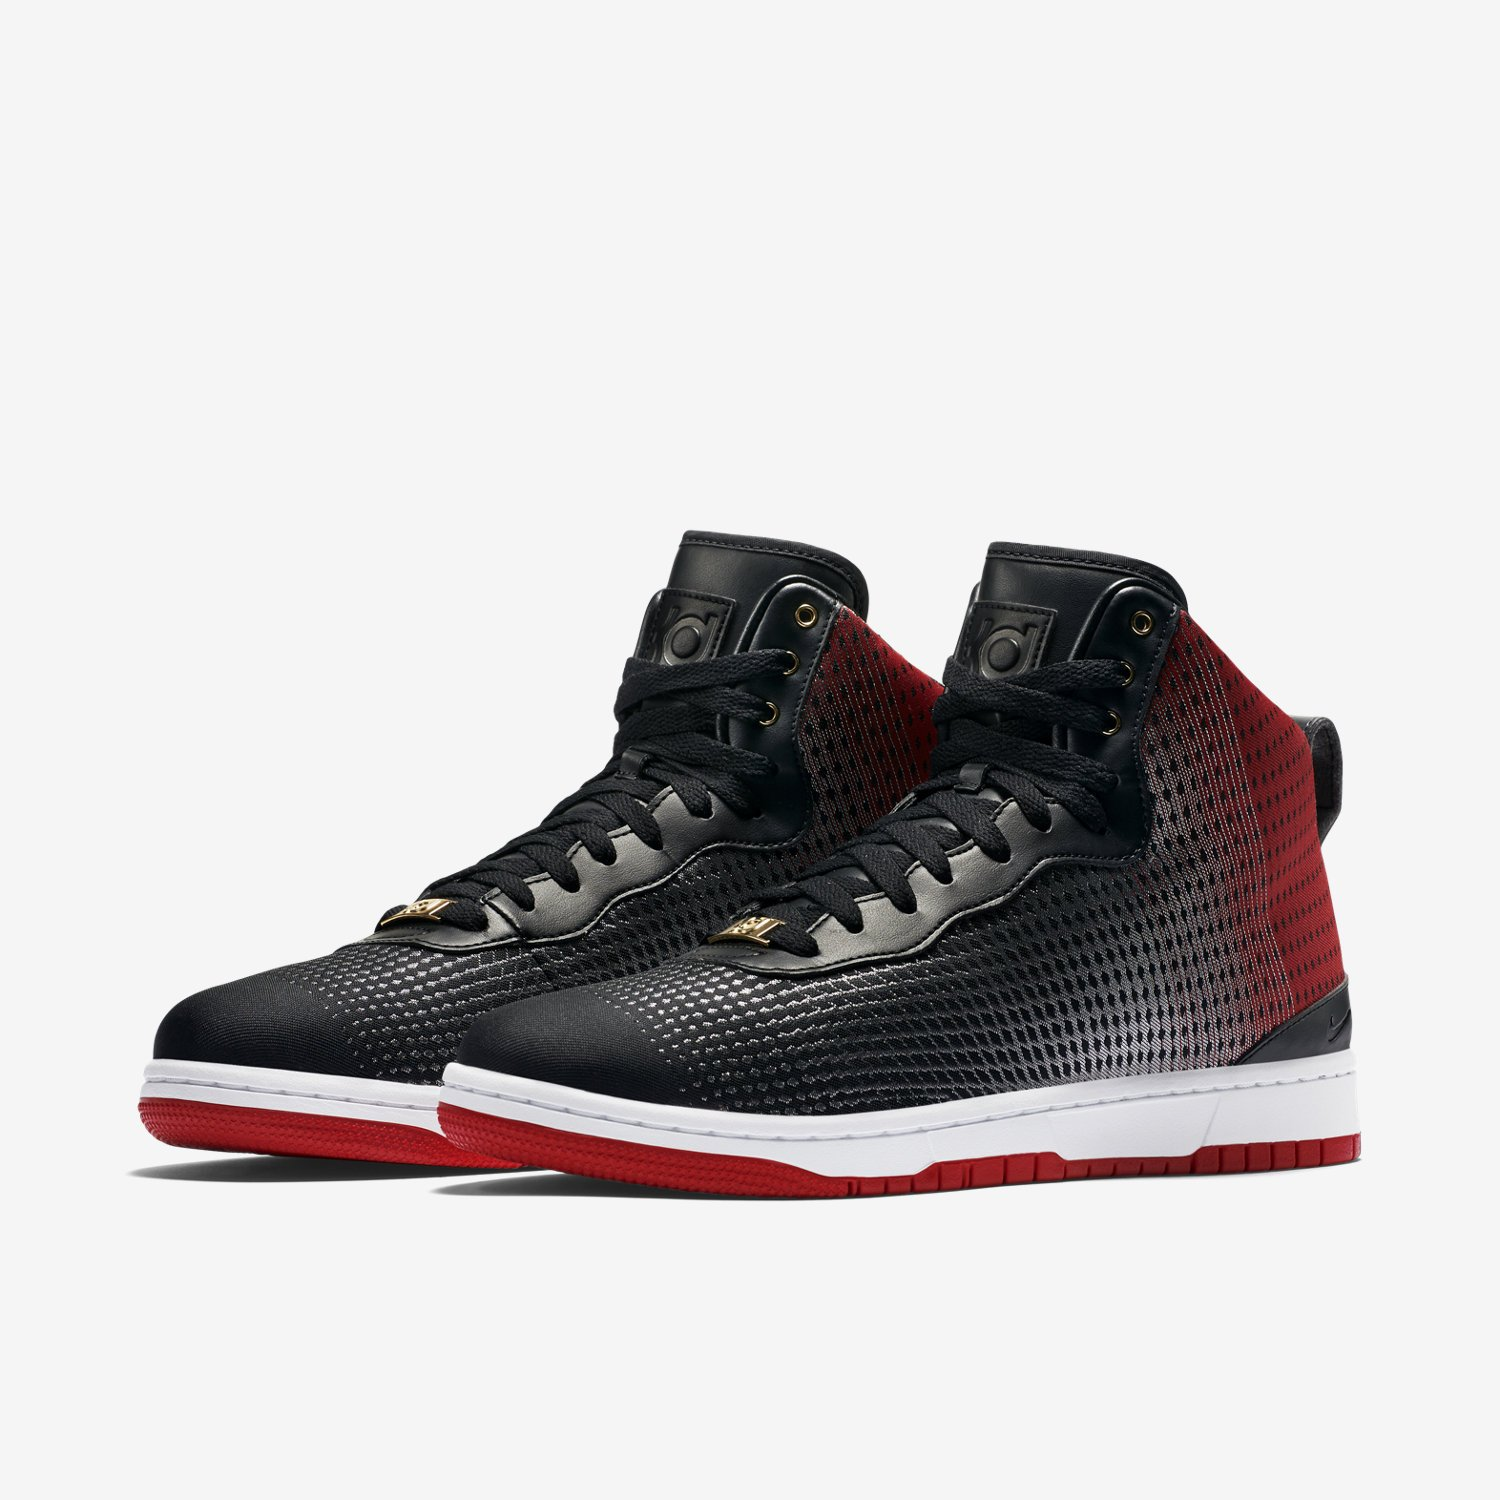 Nike Kevin Durant KD X Basketball Sneakers Men s Lifestyle